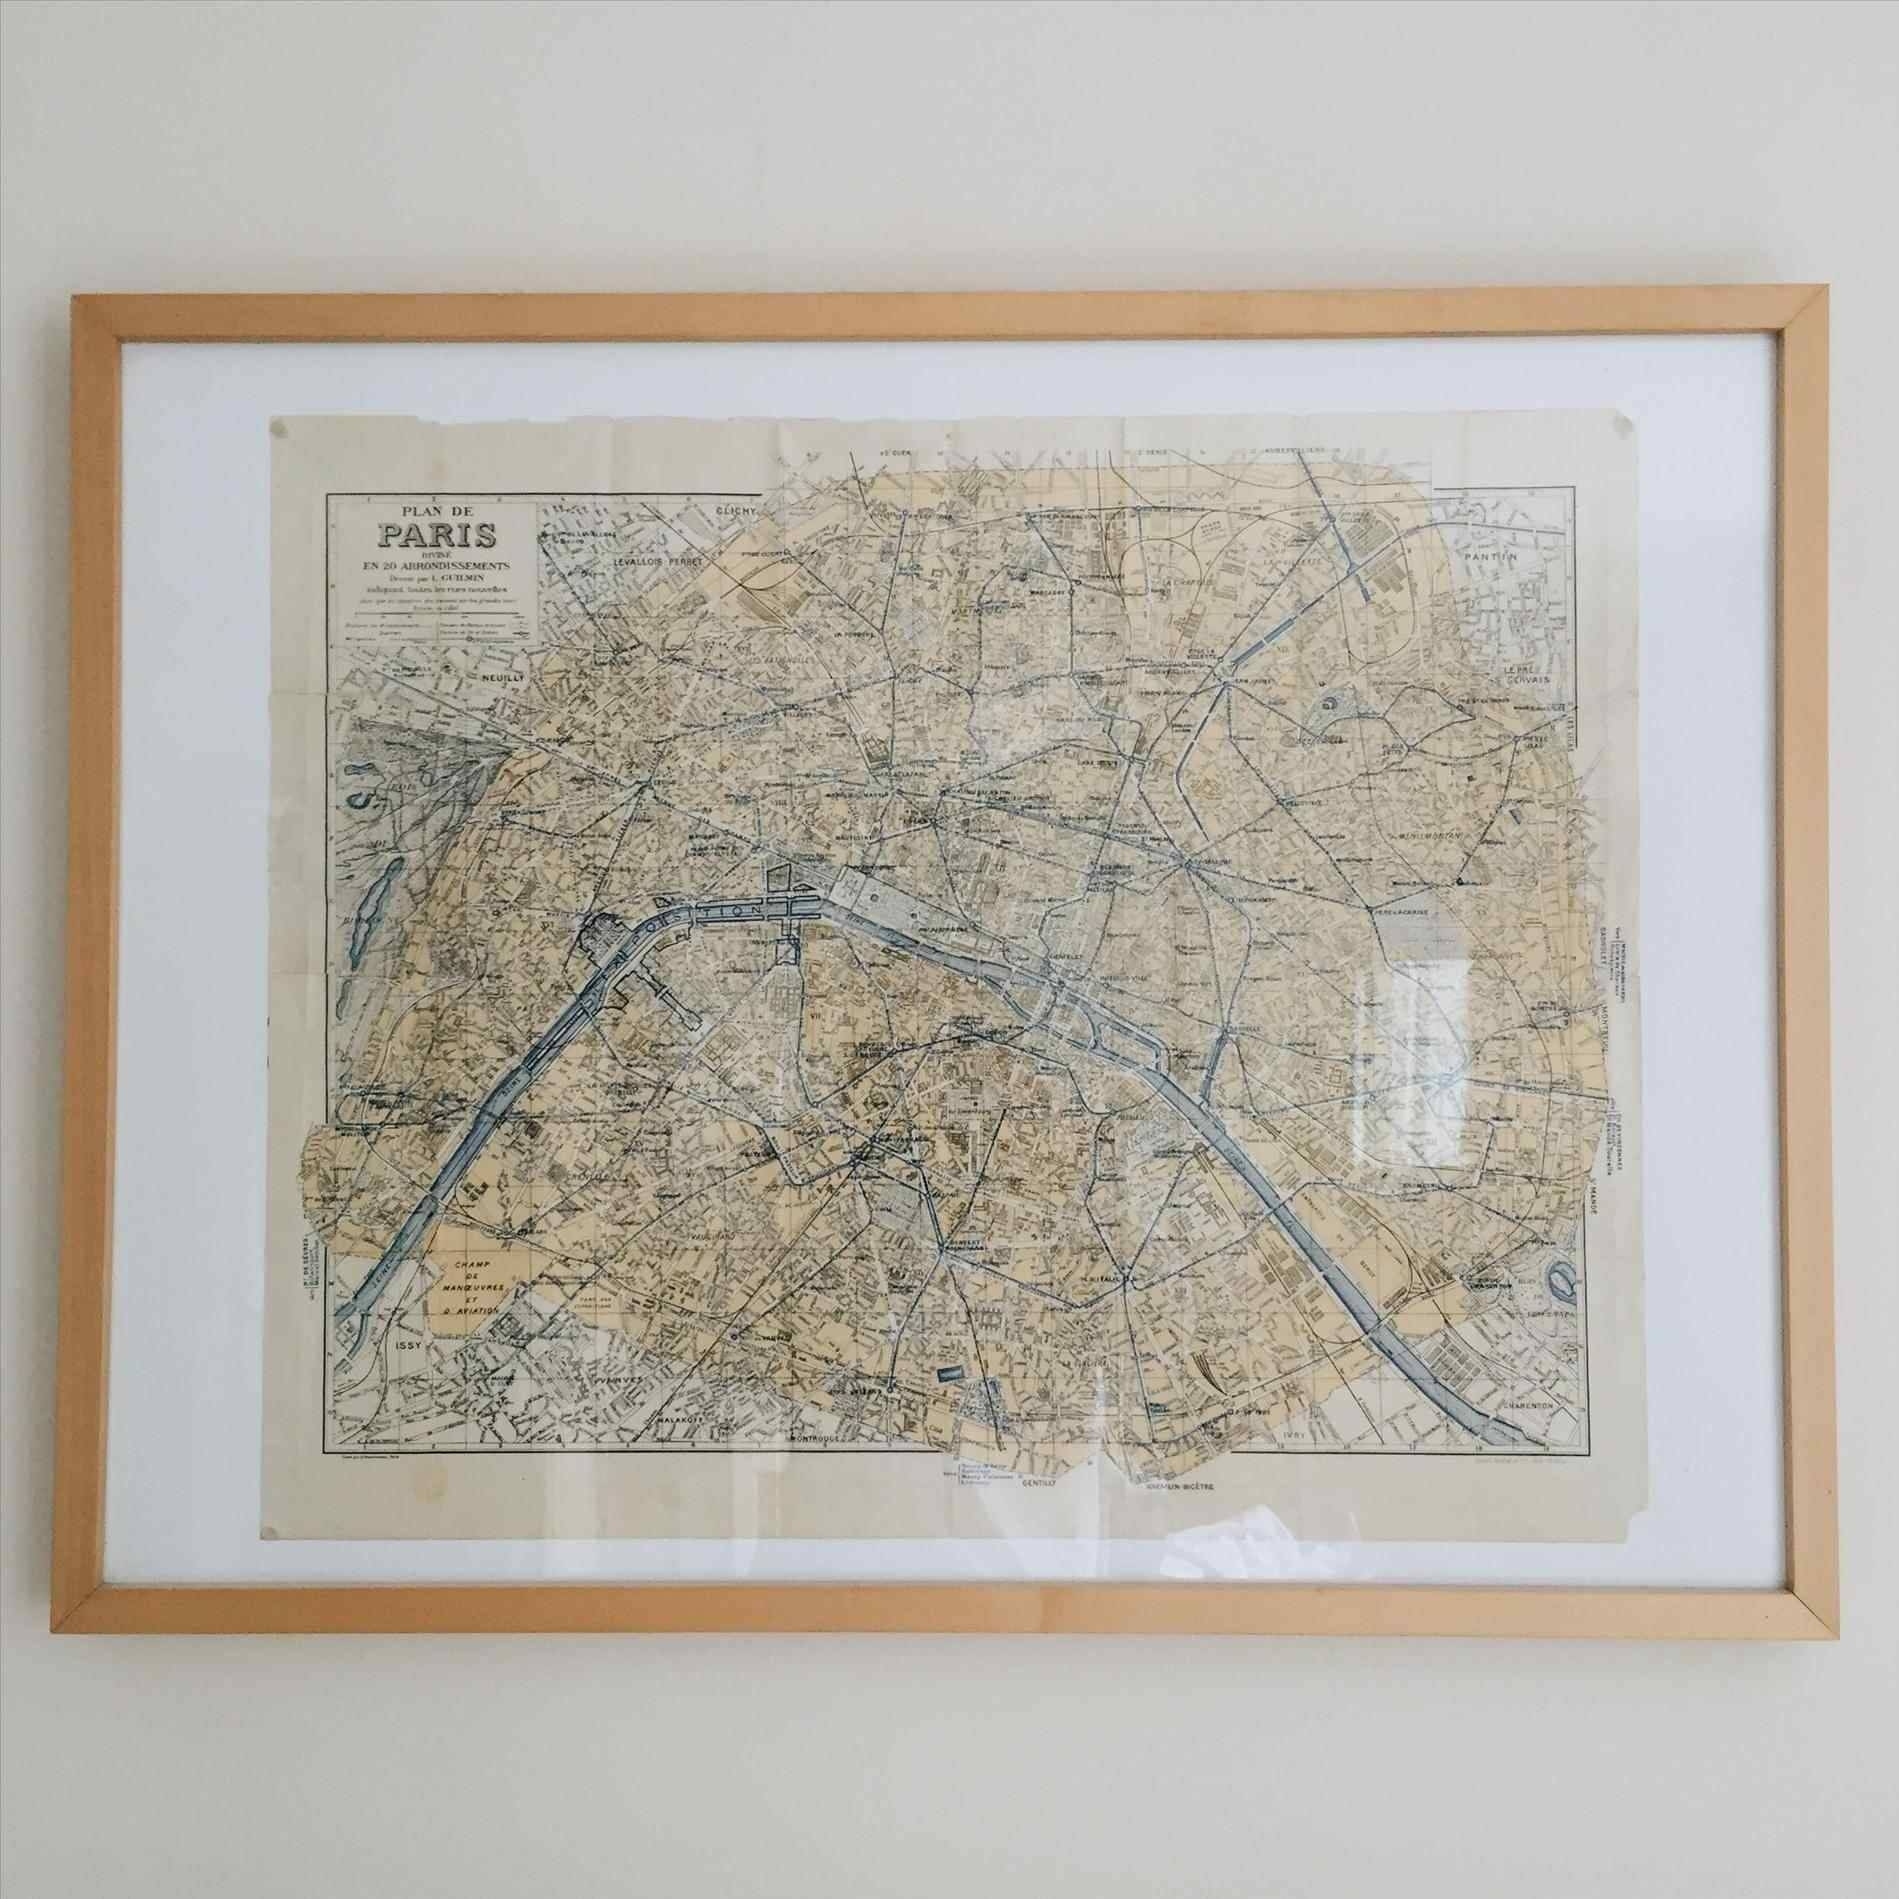 Of Paris Wall Art For Touch Class Awesome Paris Metal Wall Art Map with regard to Most Up-to-Date Paris Metal Wall Art